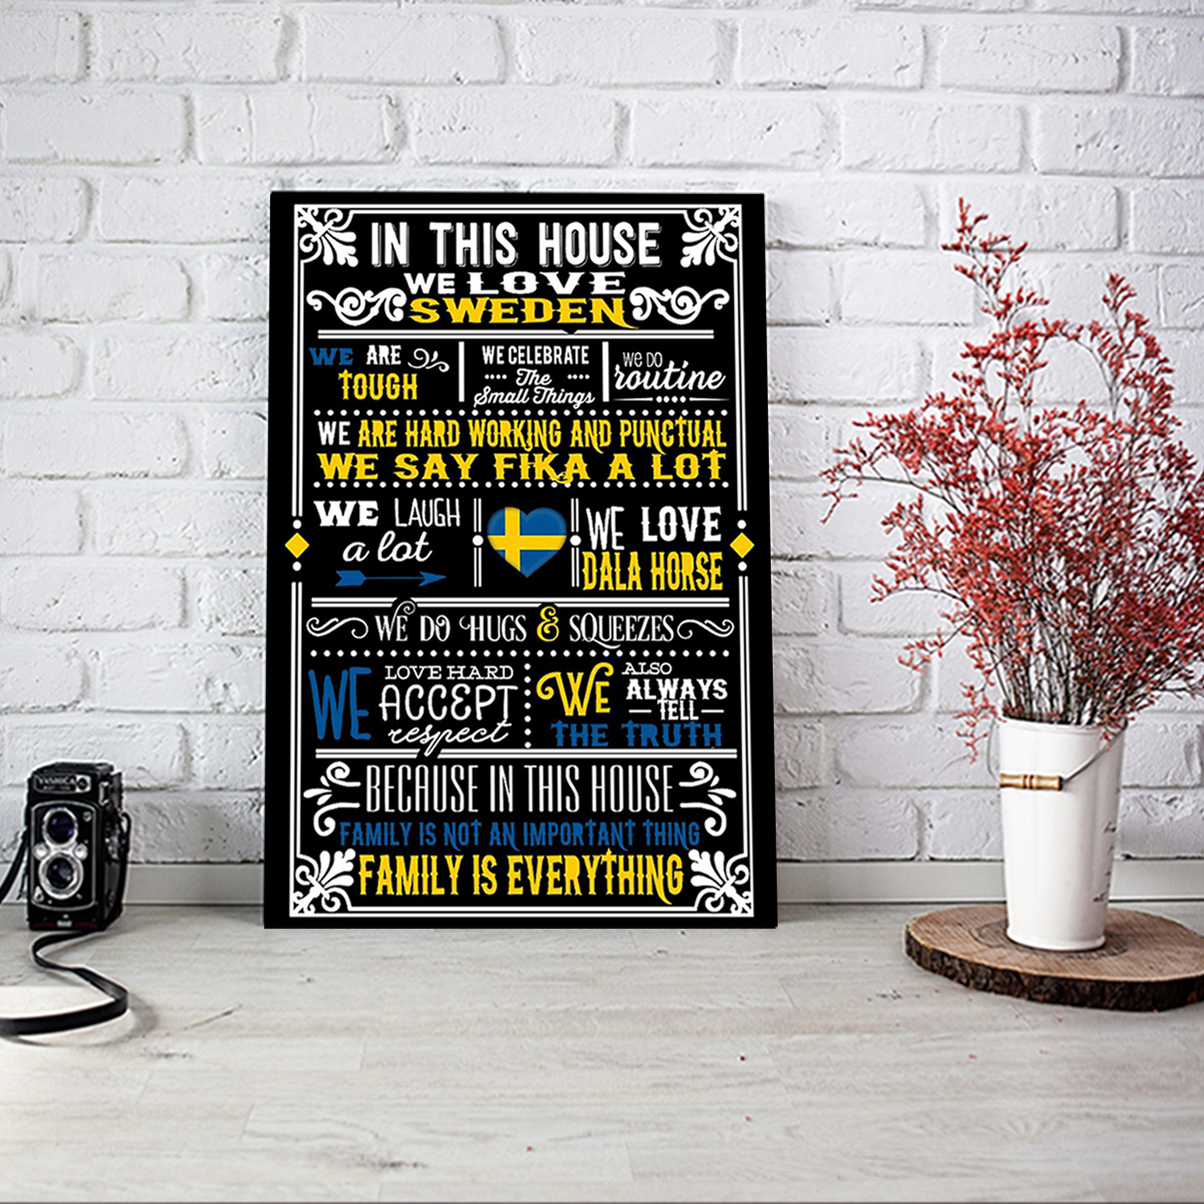 In this house we love sweden poster A1